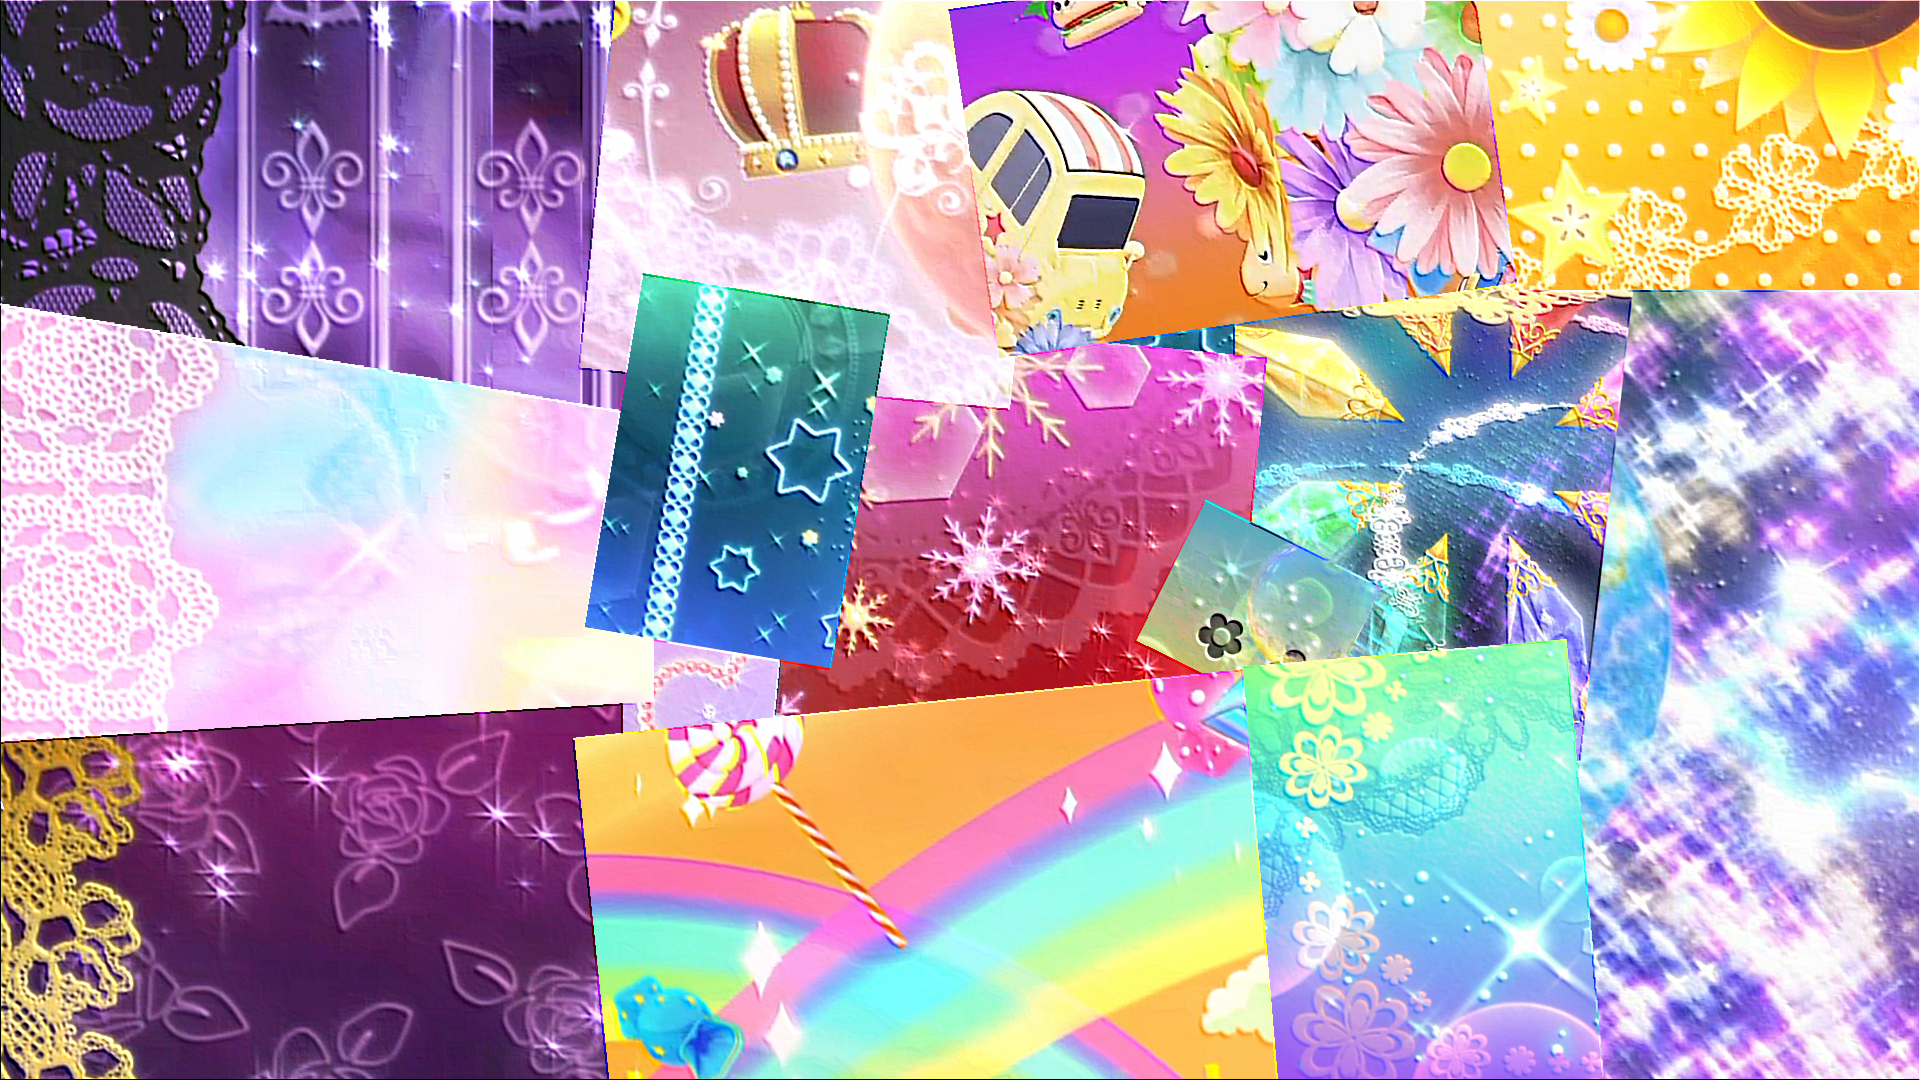 Cool Wallpaper Logo Collage - aikatsu_bg_collage_w__logo_by_rubypearl31-d709pfv  You Should Have_908062.png